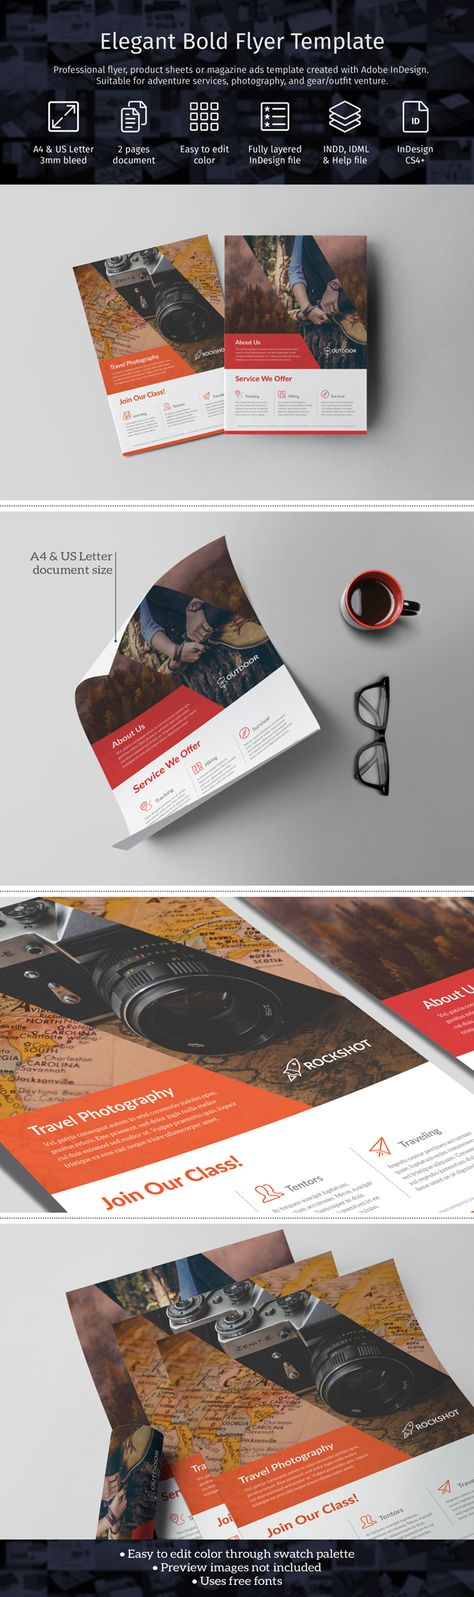 Elegant Bold Flyer By Fisihsani On Creativemarket Awesome Flyer